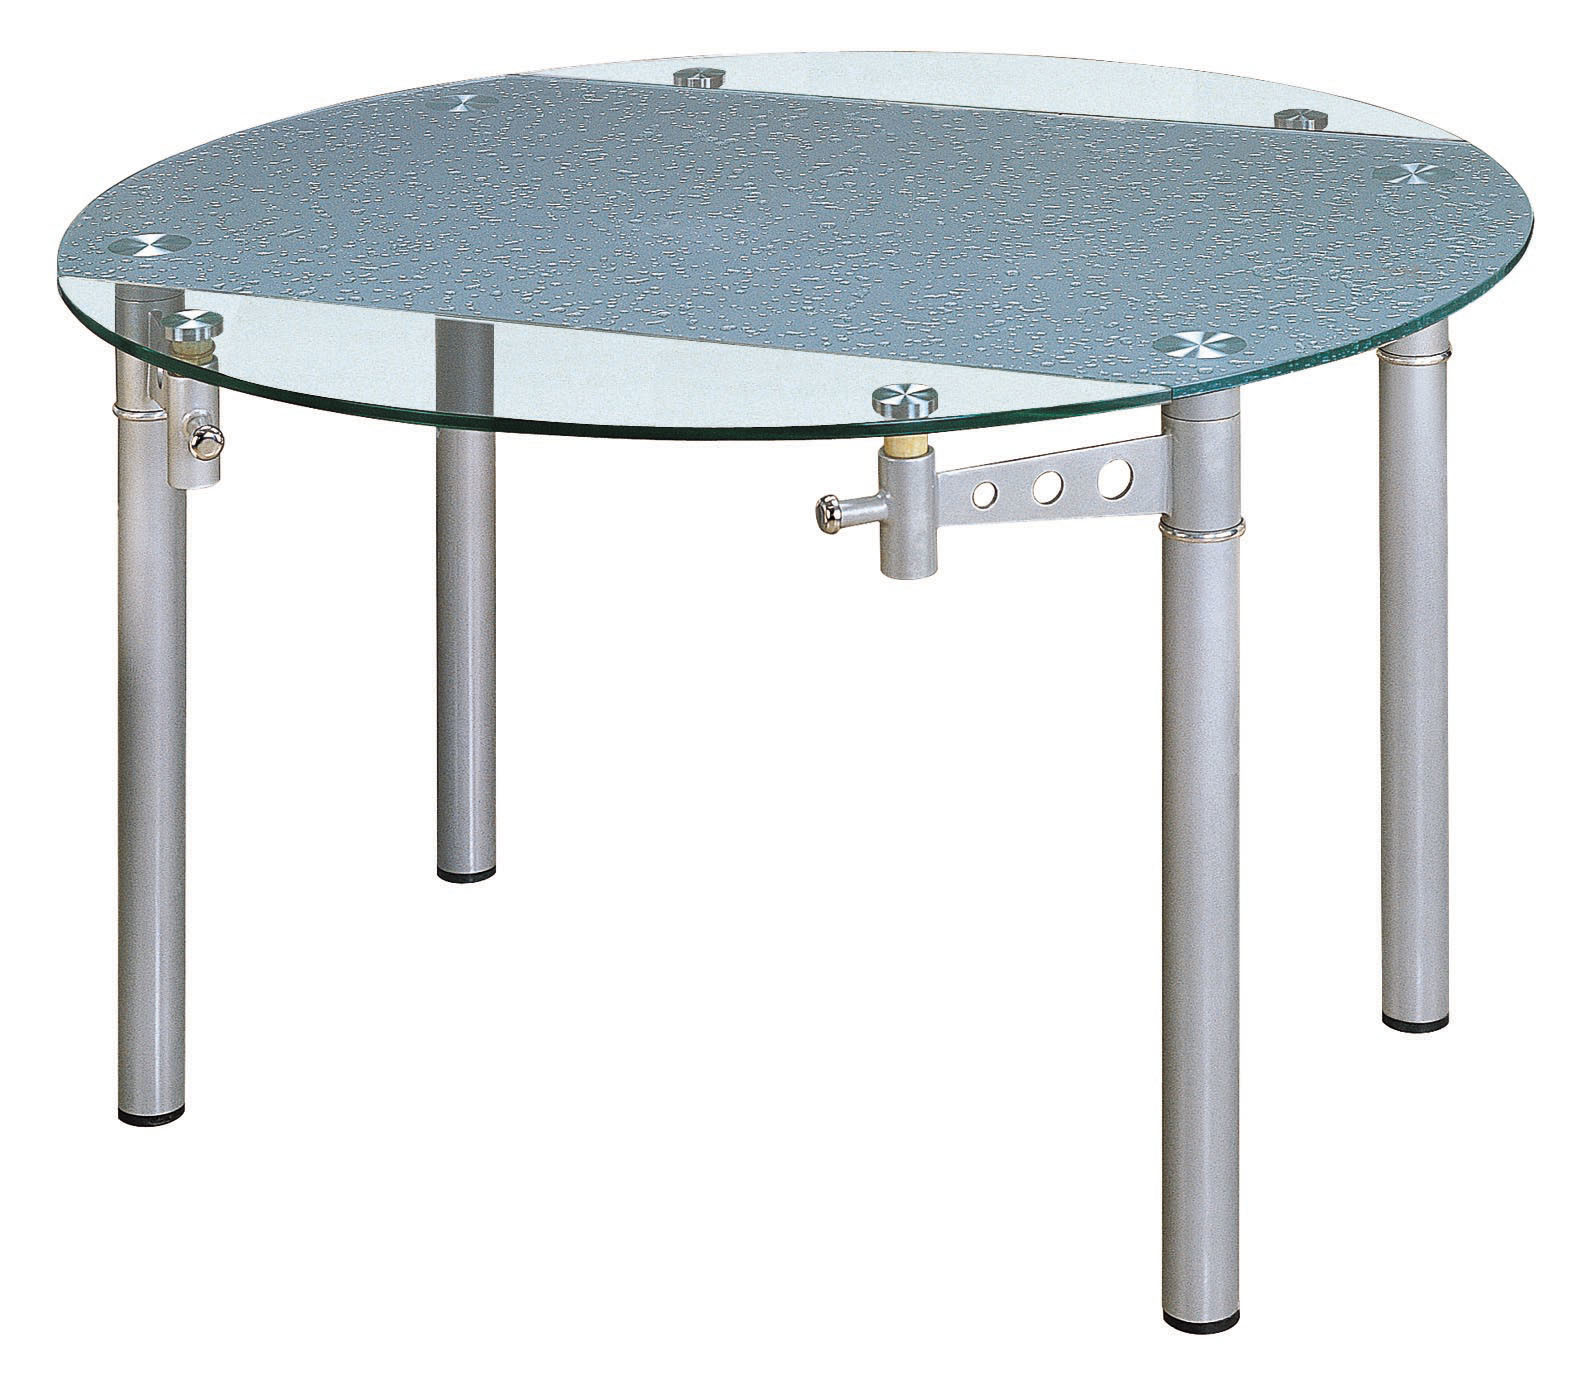 Glass Dining Table Price In Glass Dining Table Price In Delhi 187 Gallery Dining Glass Dining